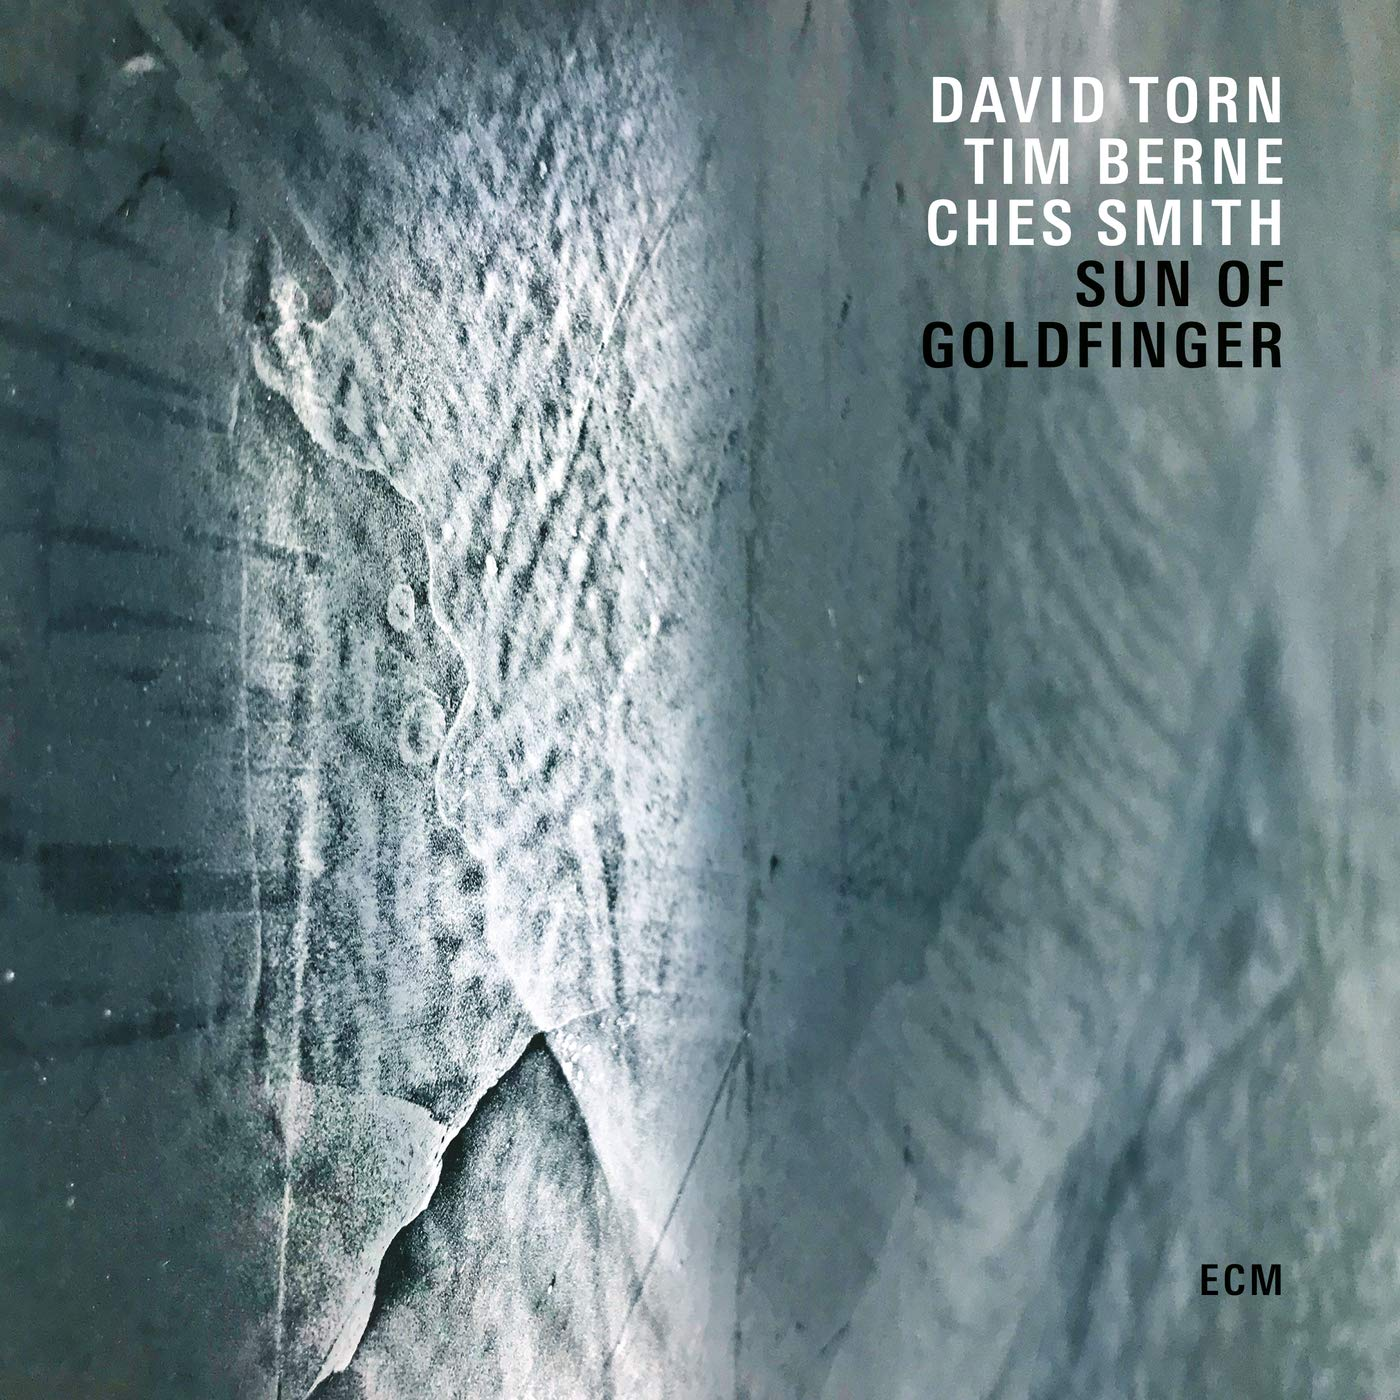 Buy David Torn - Sun of Goldfinger New or Used via Amazon